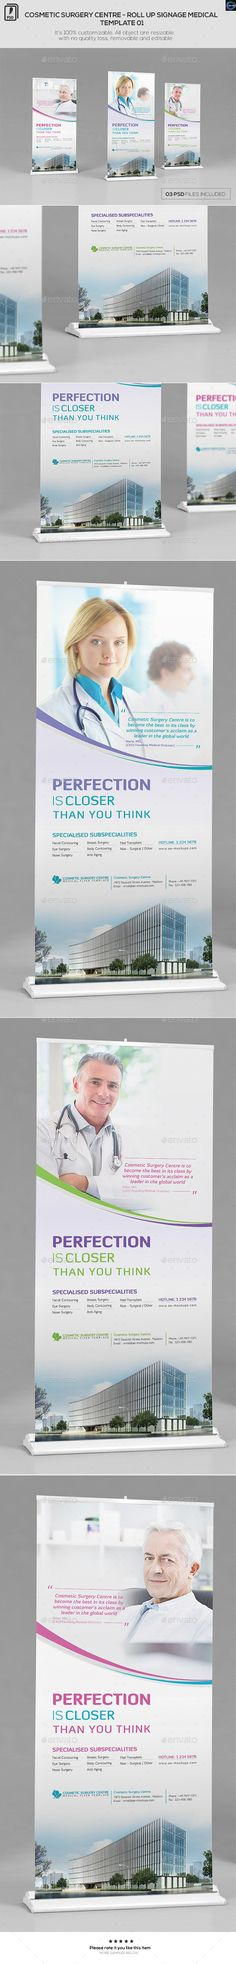 Cosmetic Surgery Centre-RollUp Medical Template 01